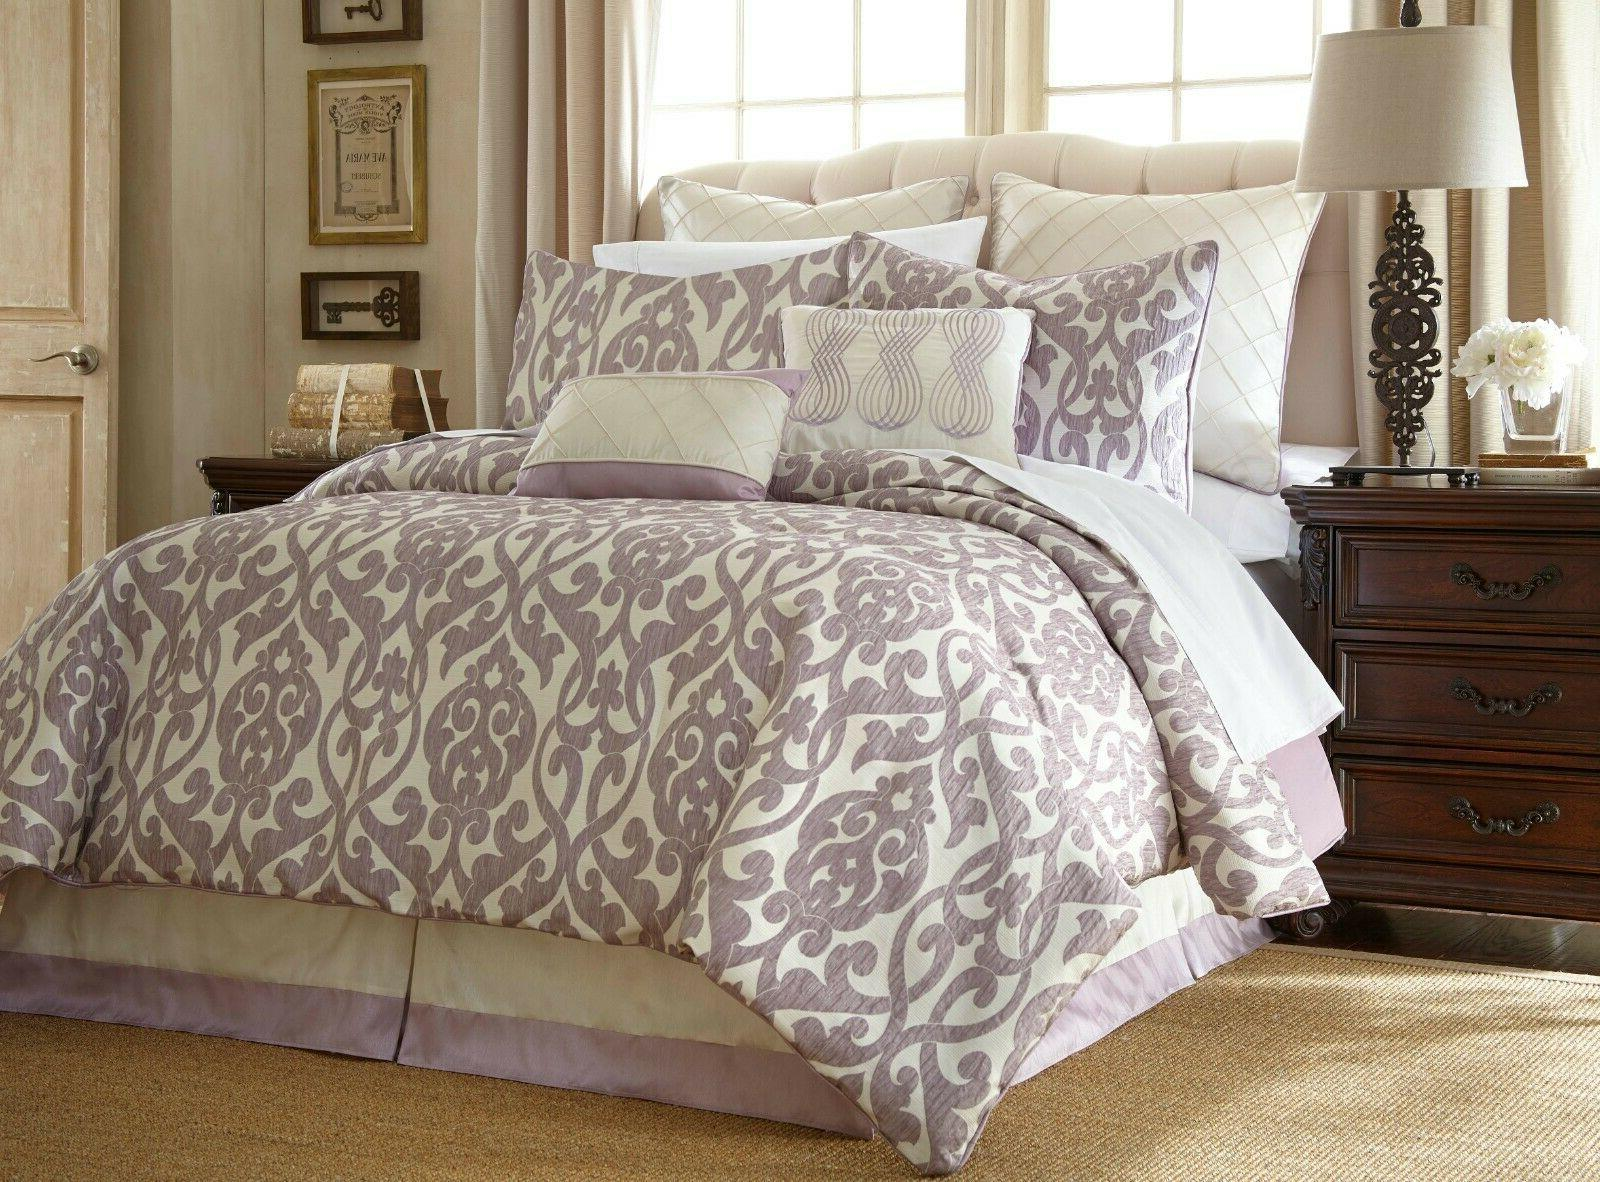 8 Piece Bedding Soft Over Sized QUEEN/KING Size Gift